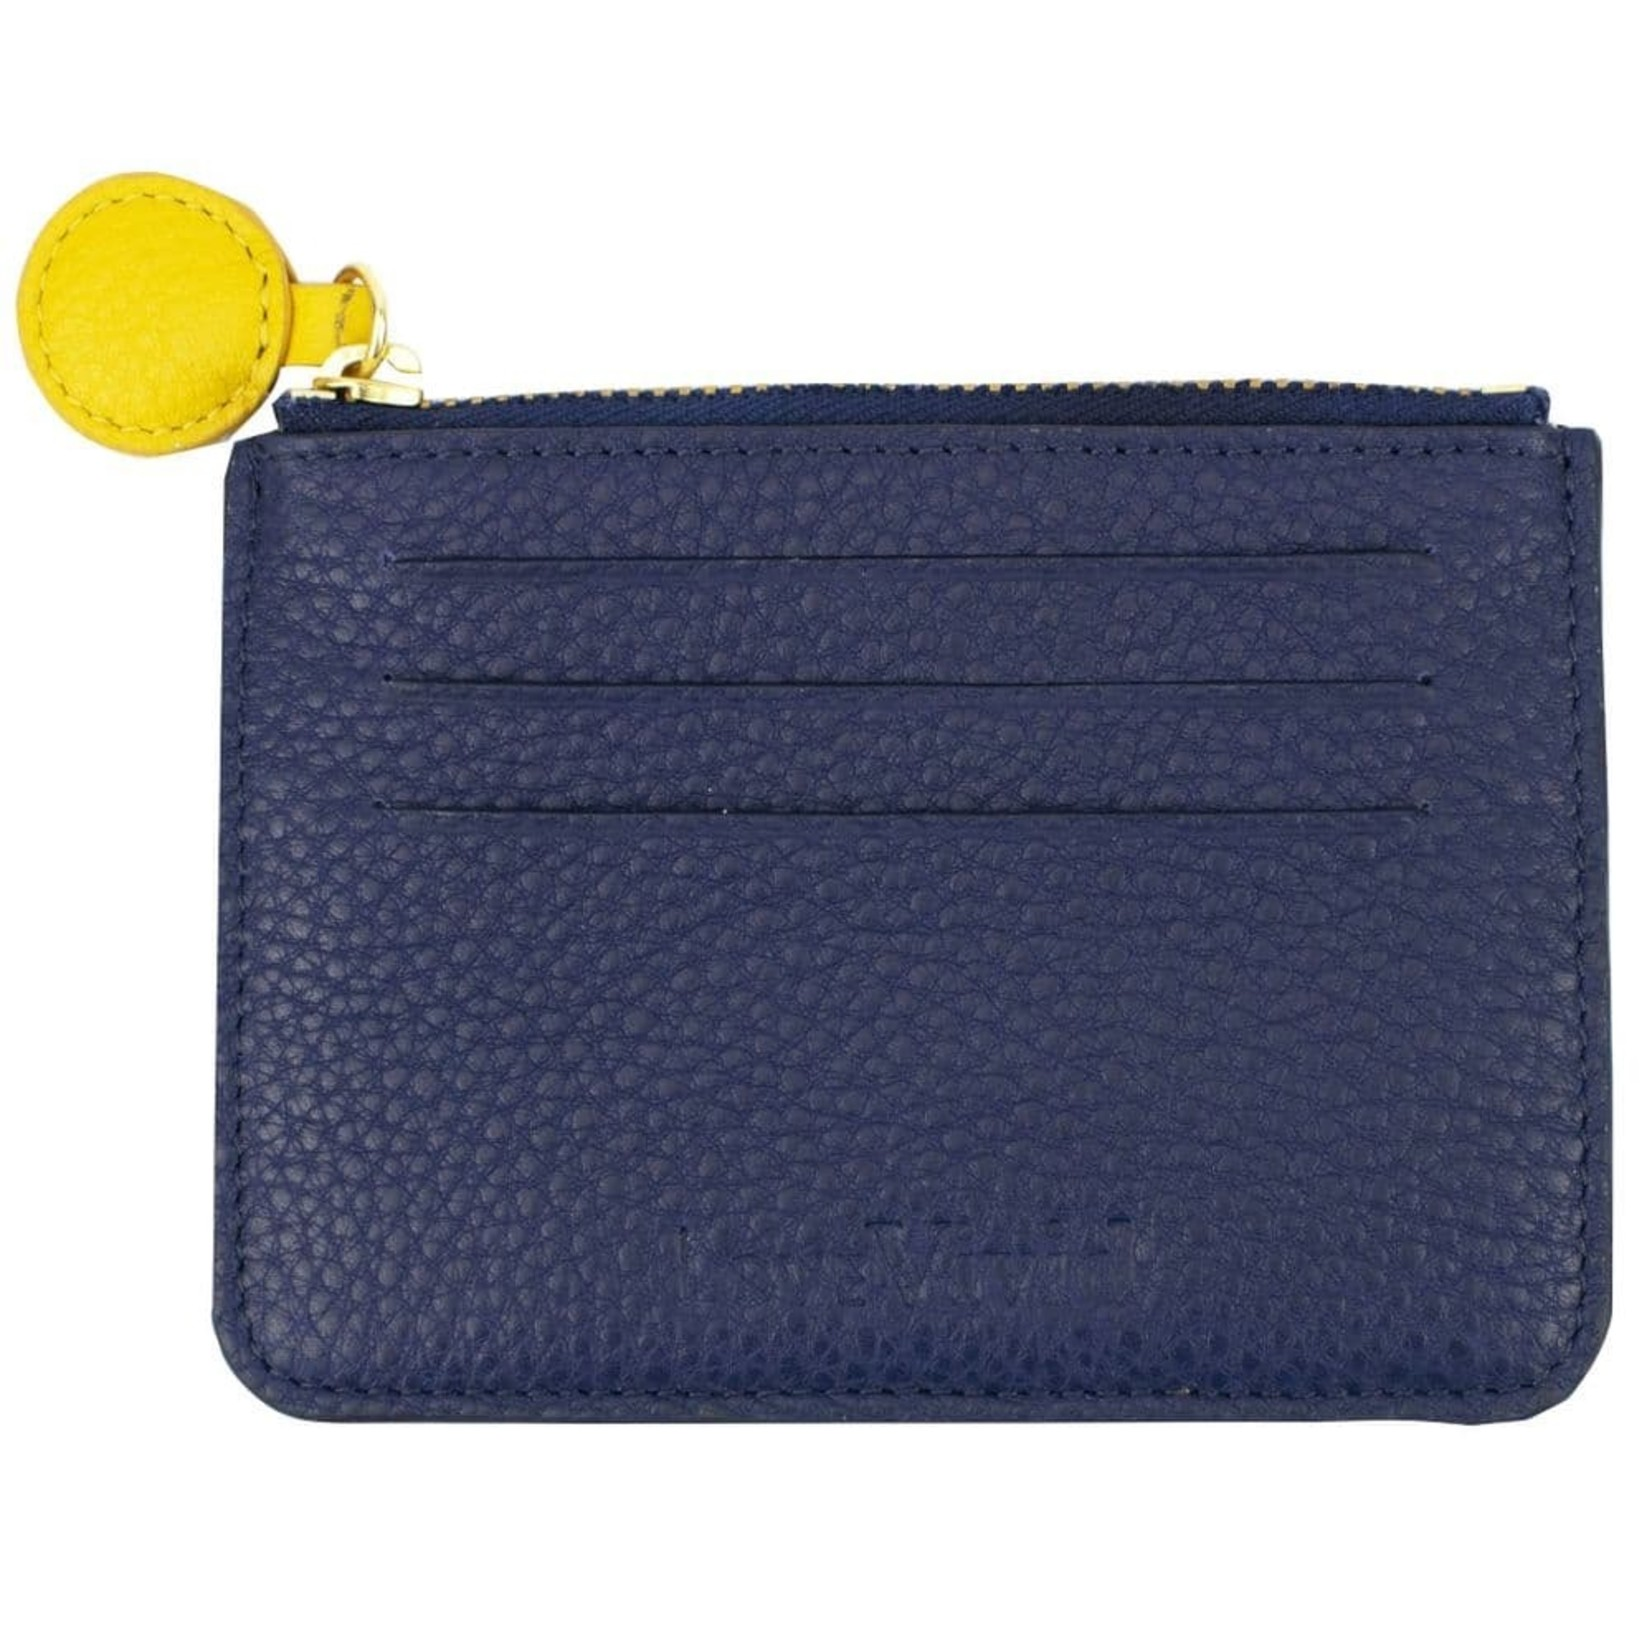 Vivid Credit Card Wallet in Navy and Yellow